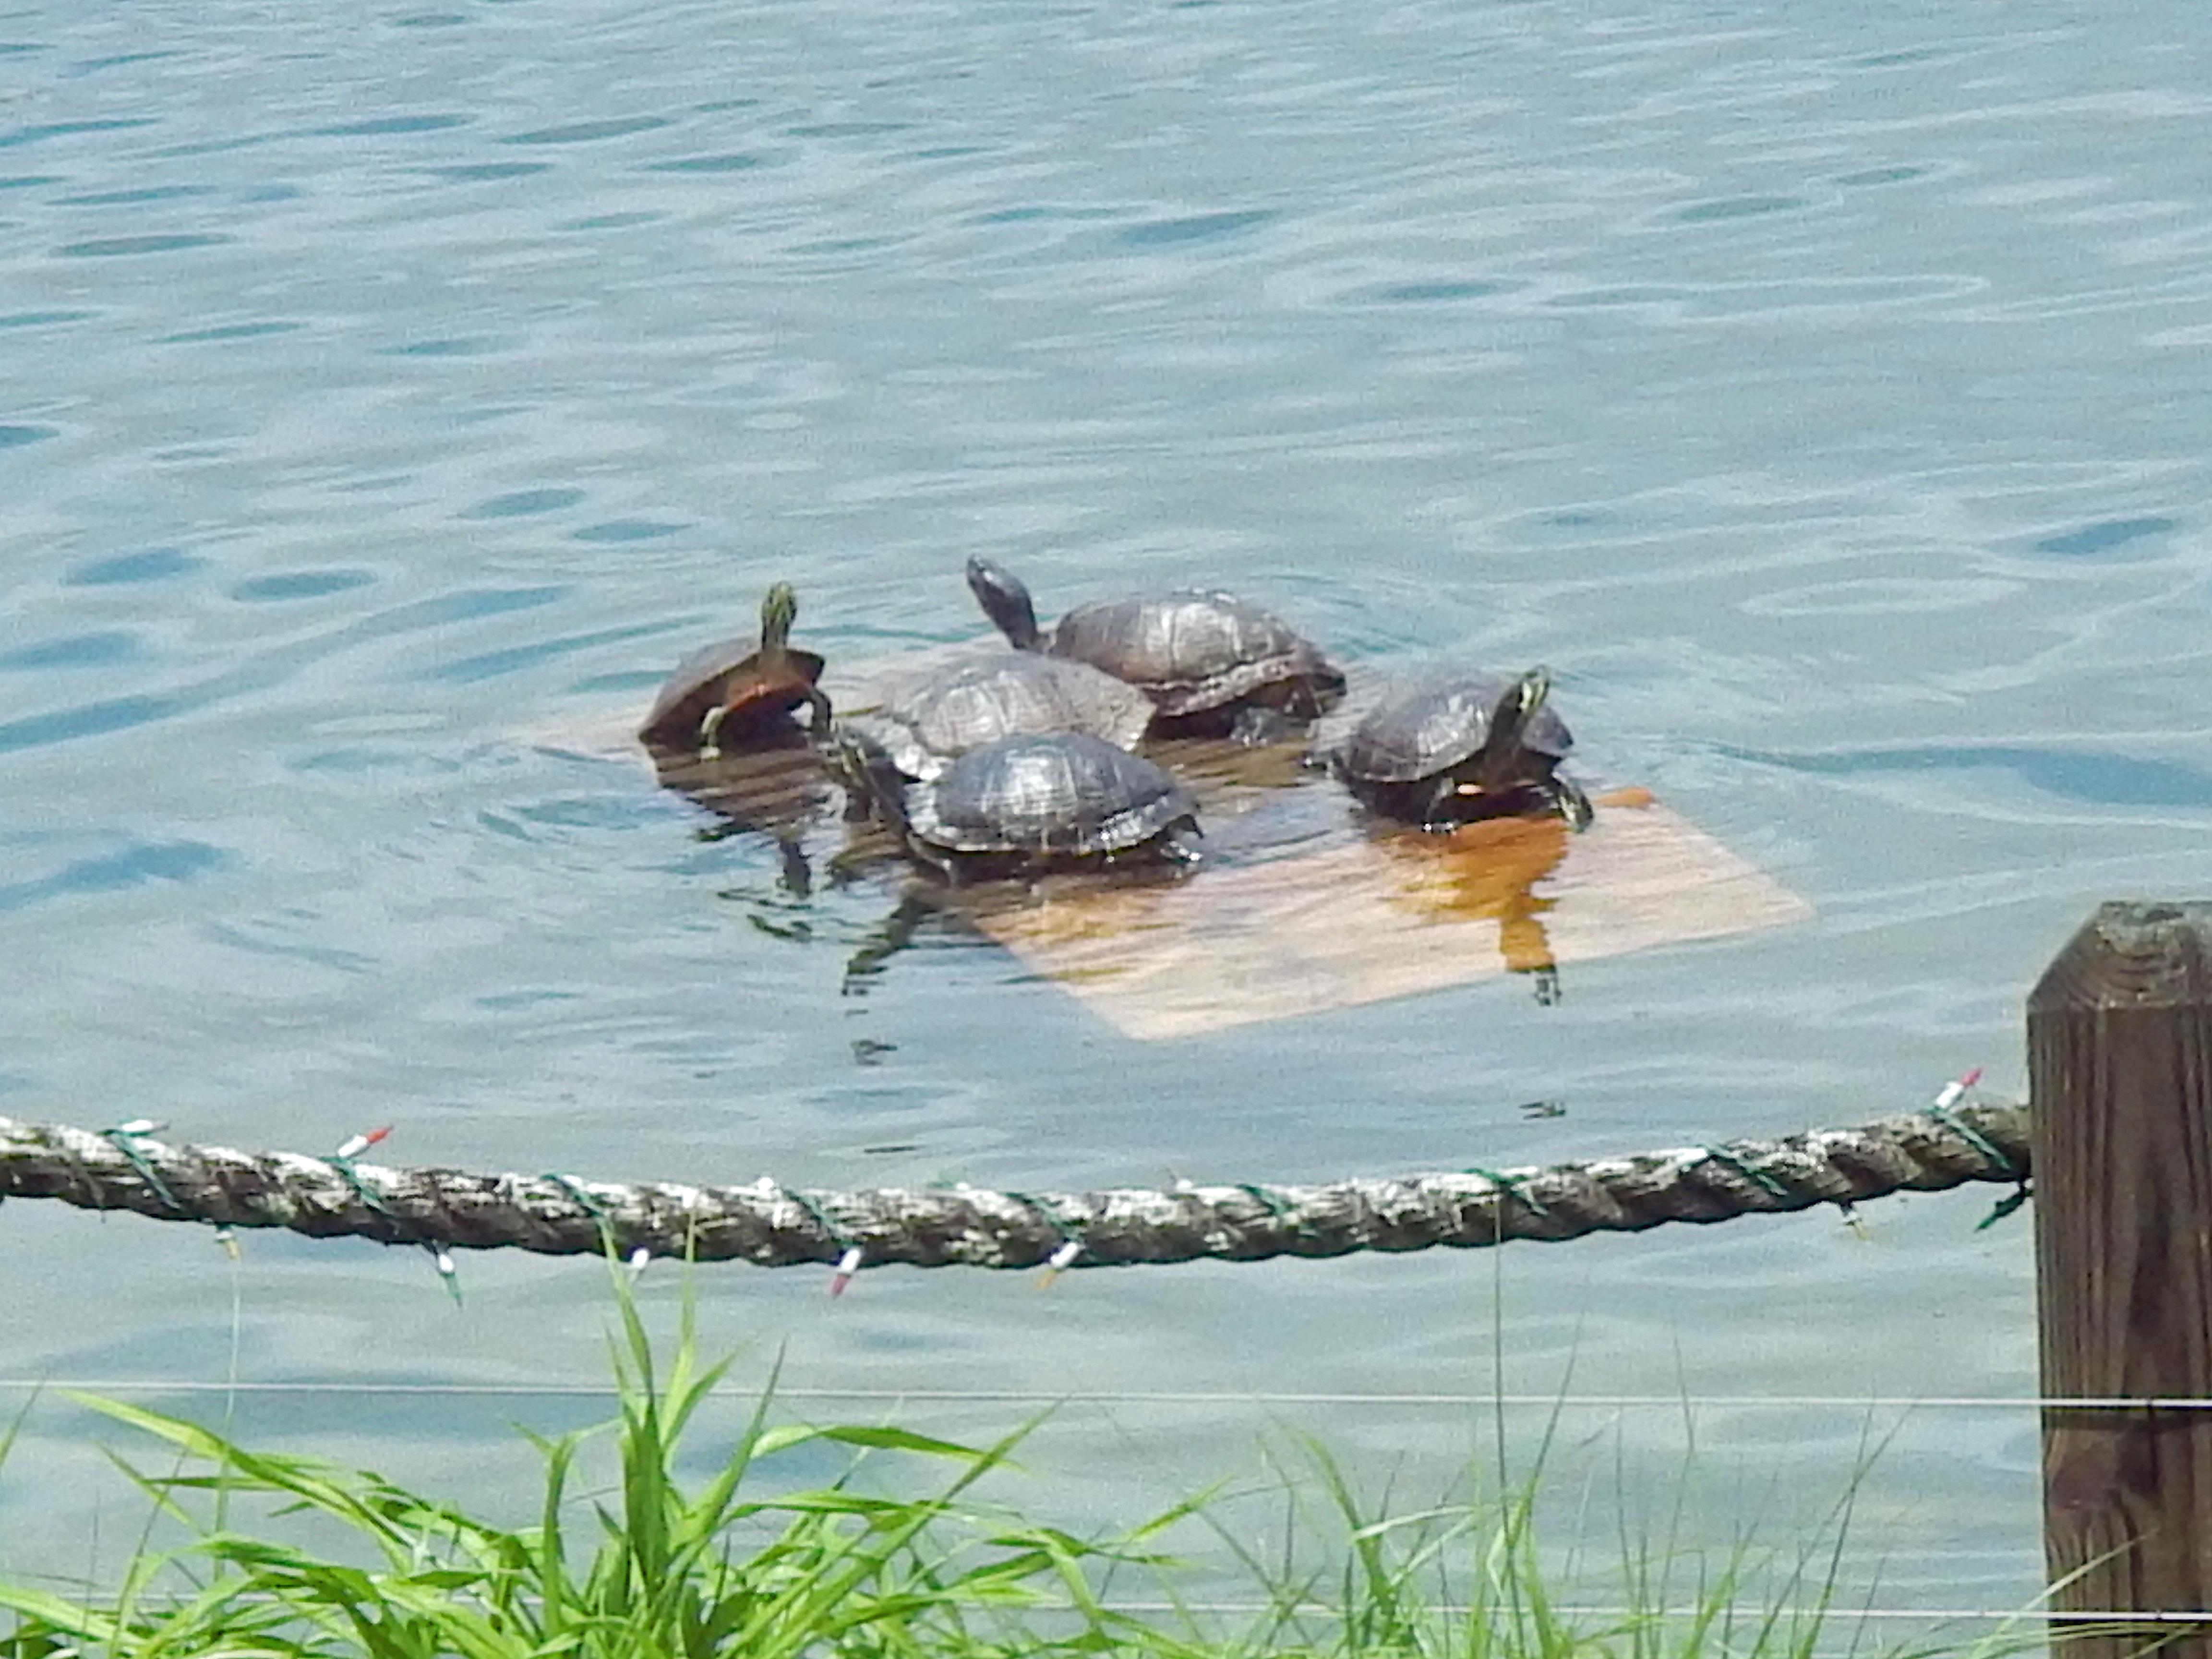 My grandfather built a floating dock for turtles in the lake by their house, and the turtles love it